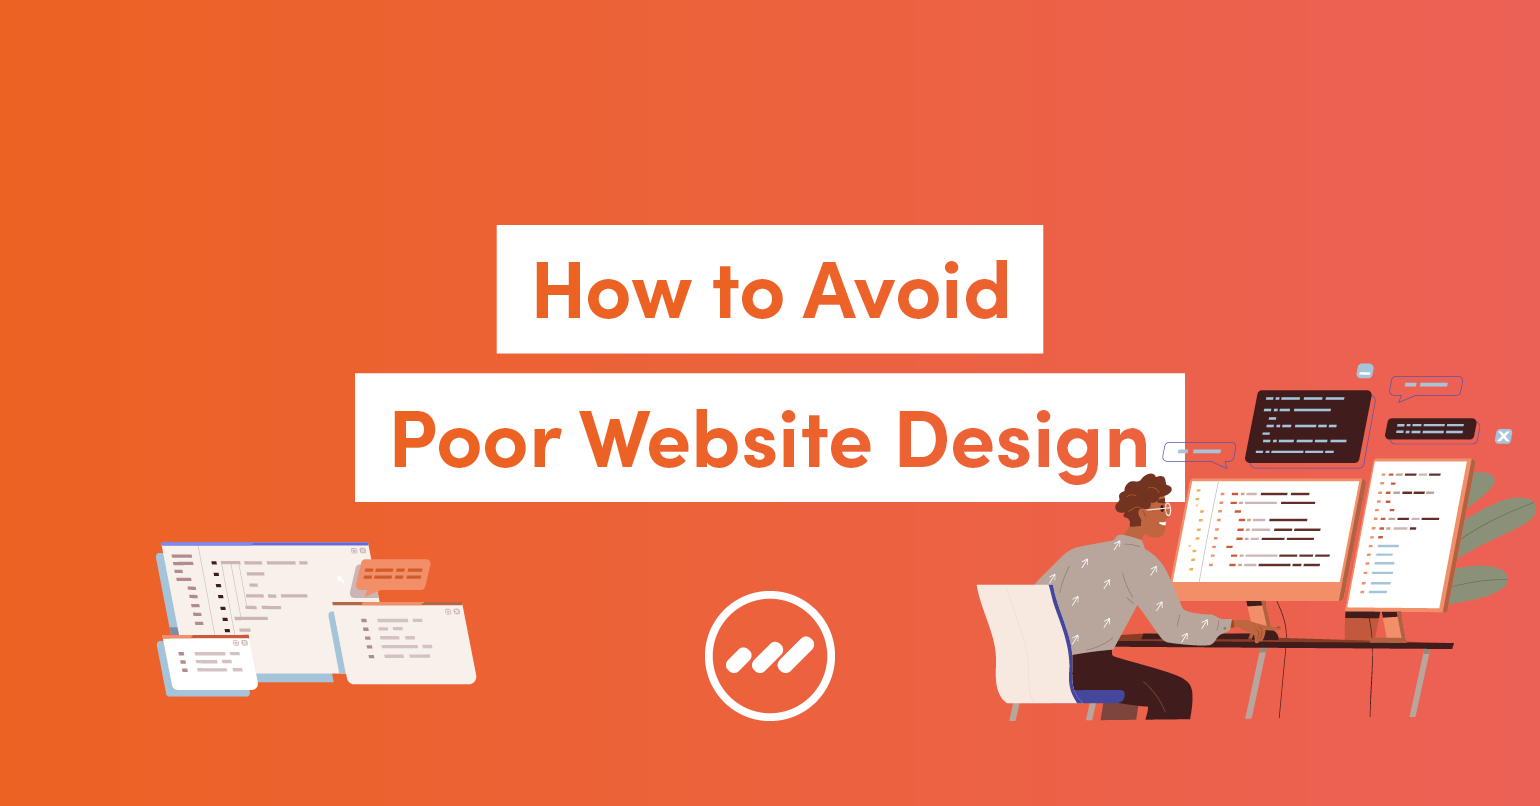 MM-Blog-HowtoAvoidPoorWebsiteDesign-Blog